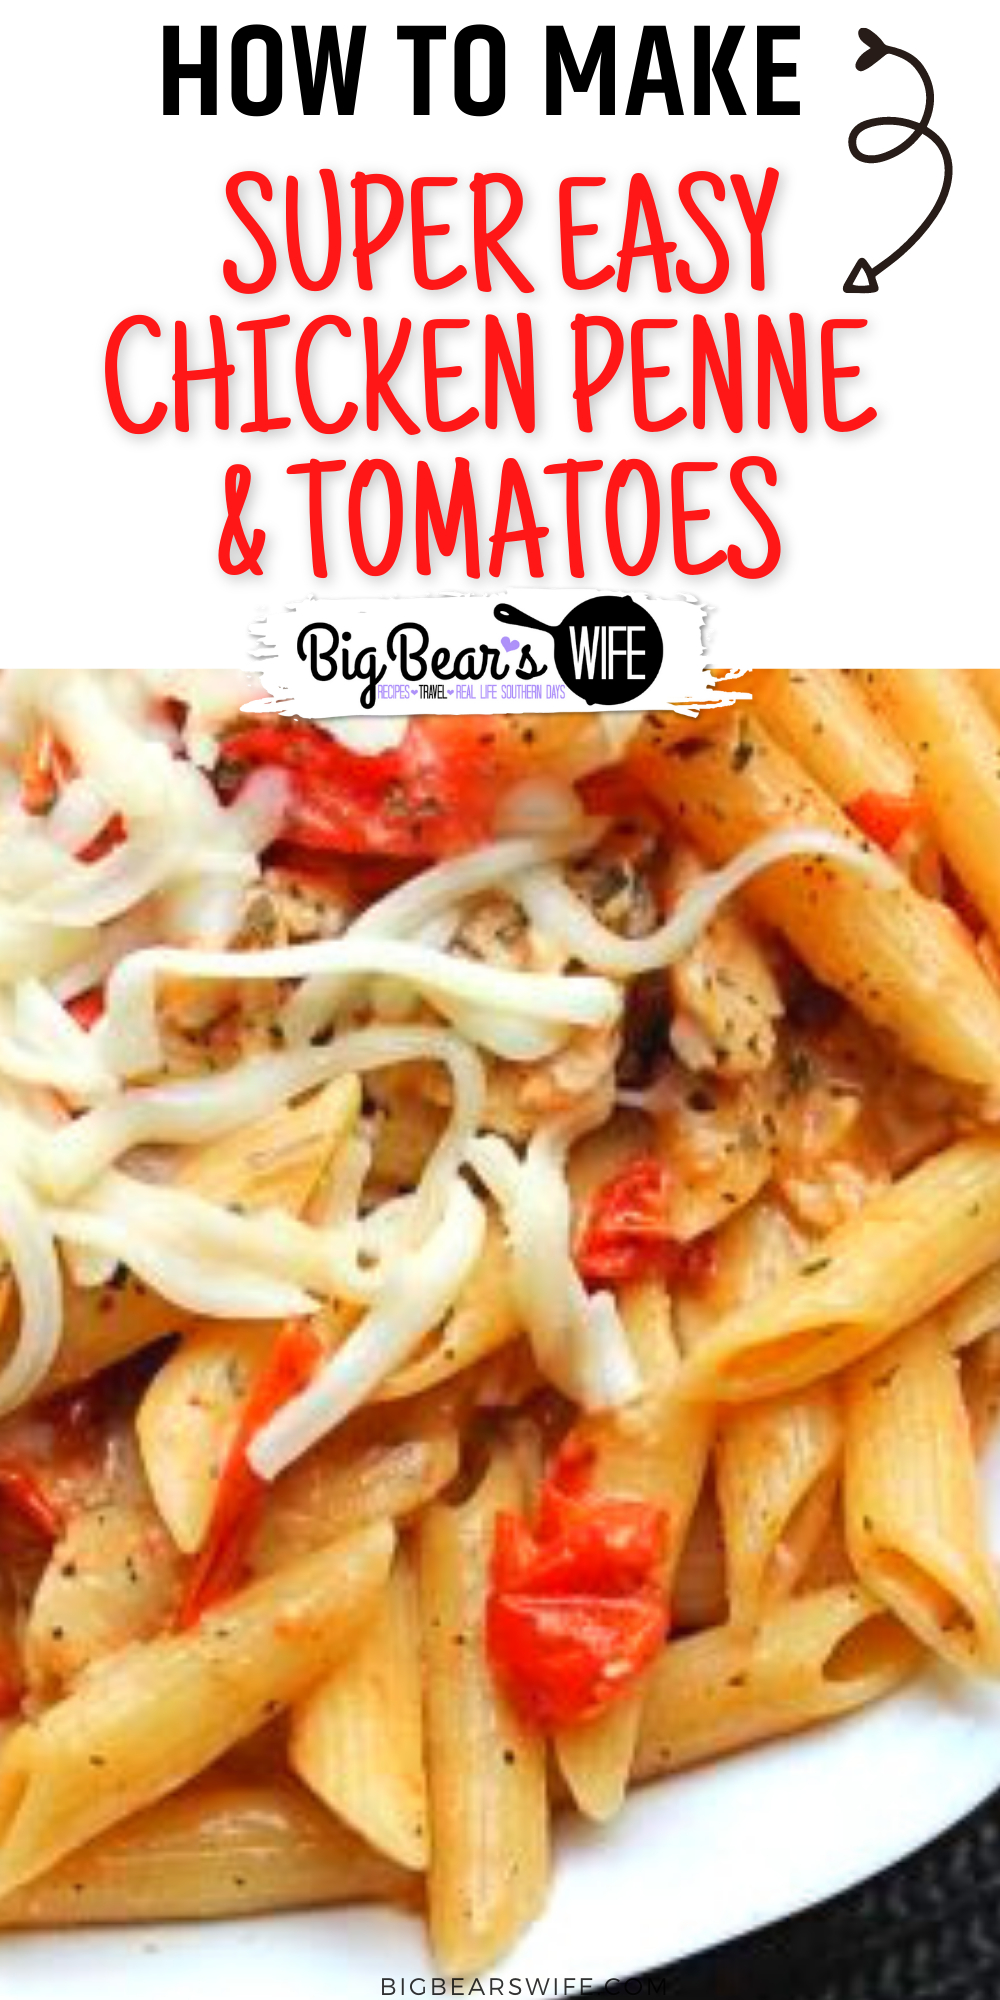 This Super Easy Chicken Penne & Tomatoes is a Pampered Chef Grilled Chicken Penne al Fresco Recipe that I got from a friend years ago. It is a great easy dinner recipe!!